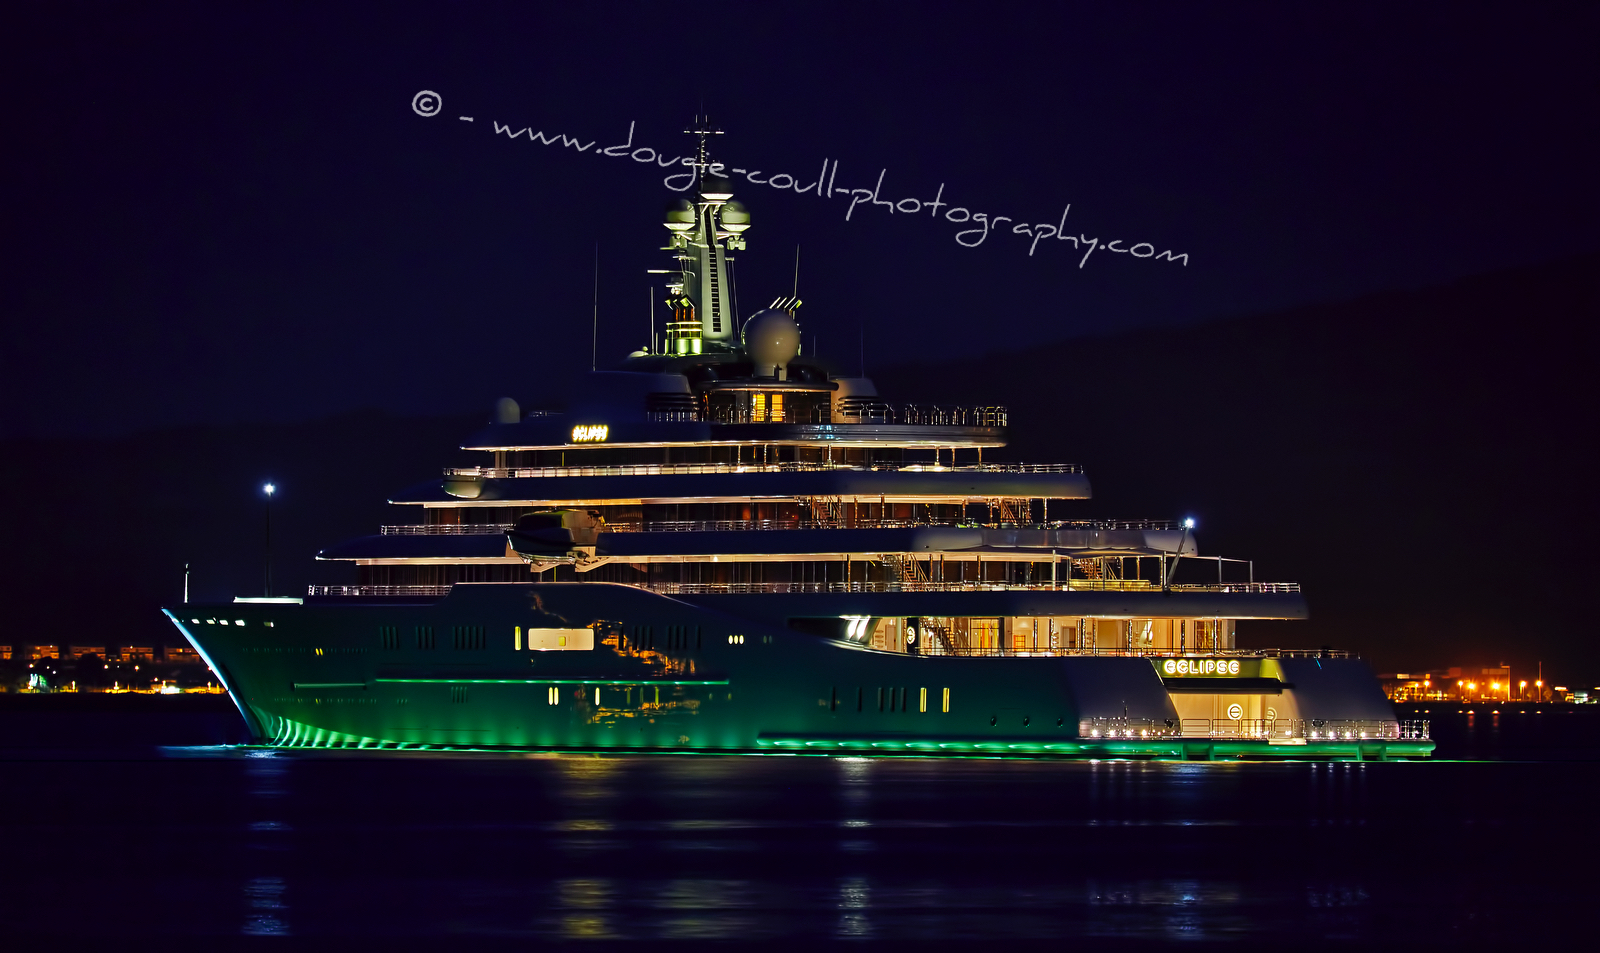 Dougie Coull Photography Eclipse Superyacht In Greenock